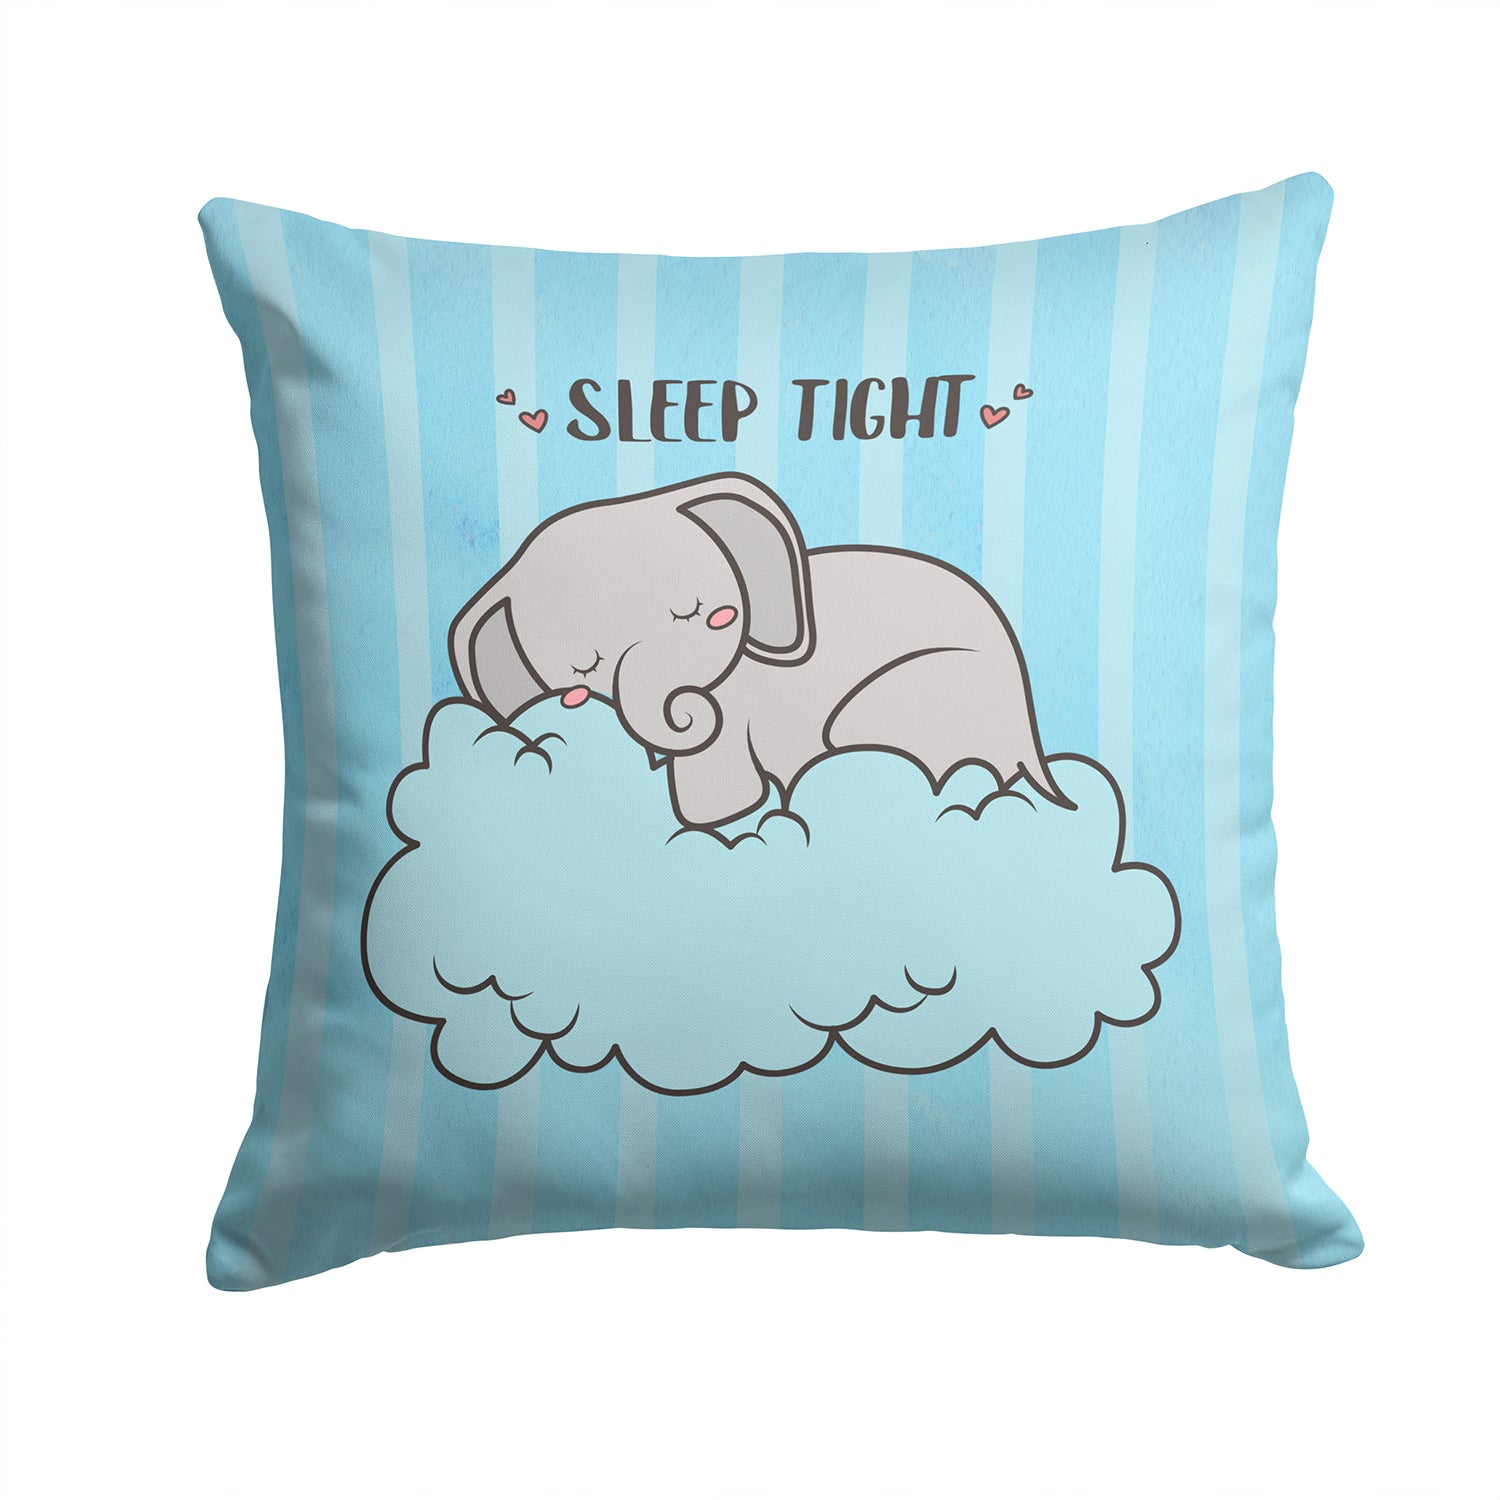 Nursery Sleep Tight Elephant Fabric Decorative Pillow BB7475PW1414 by Caroline's Treasures